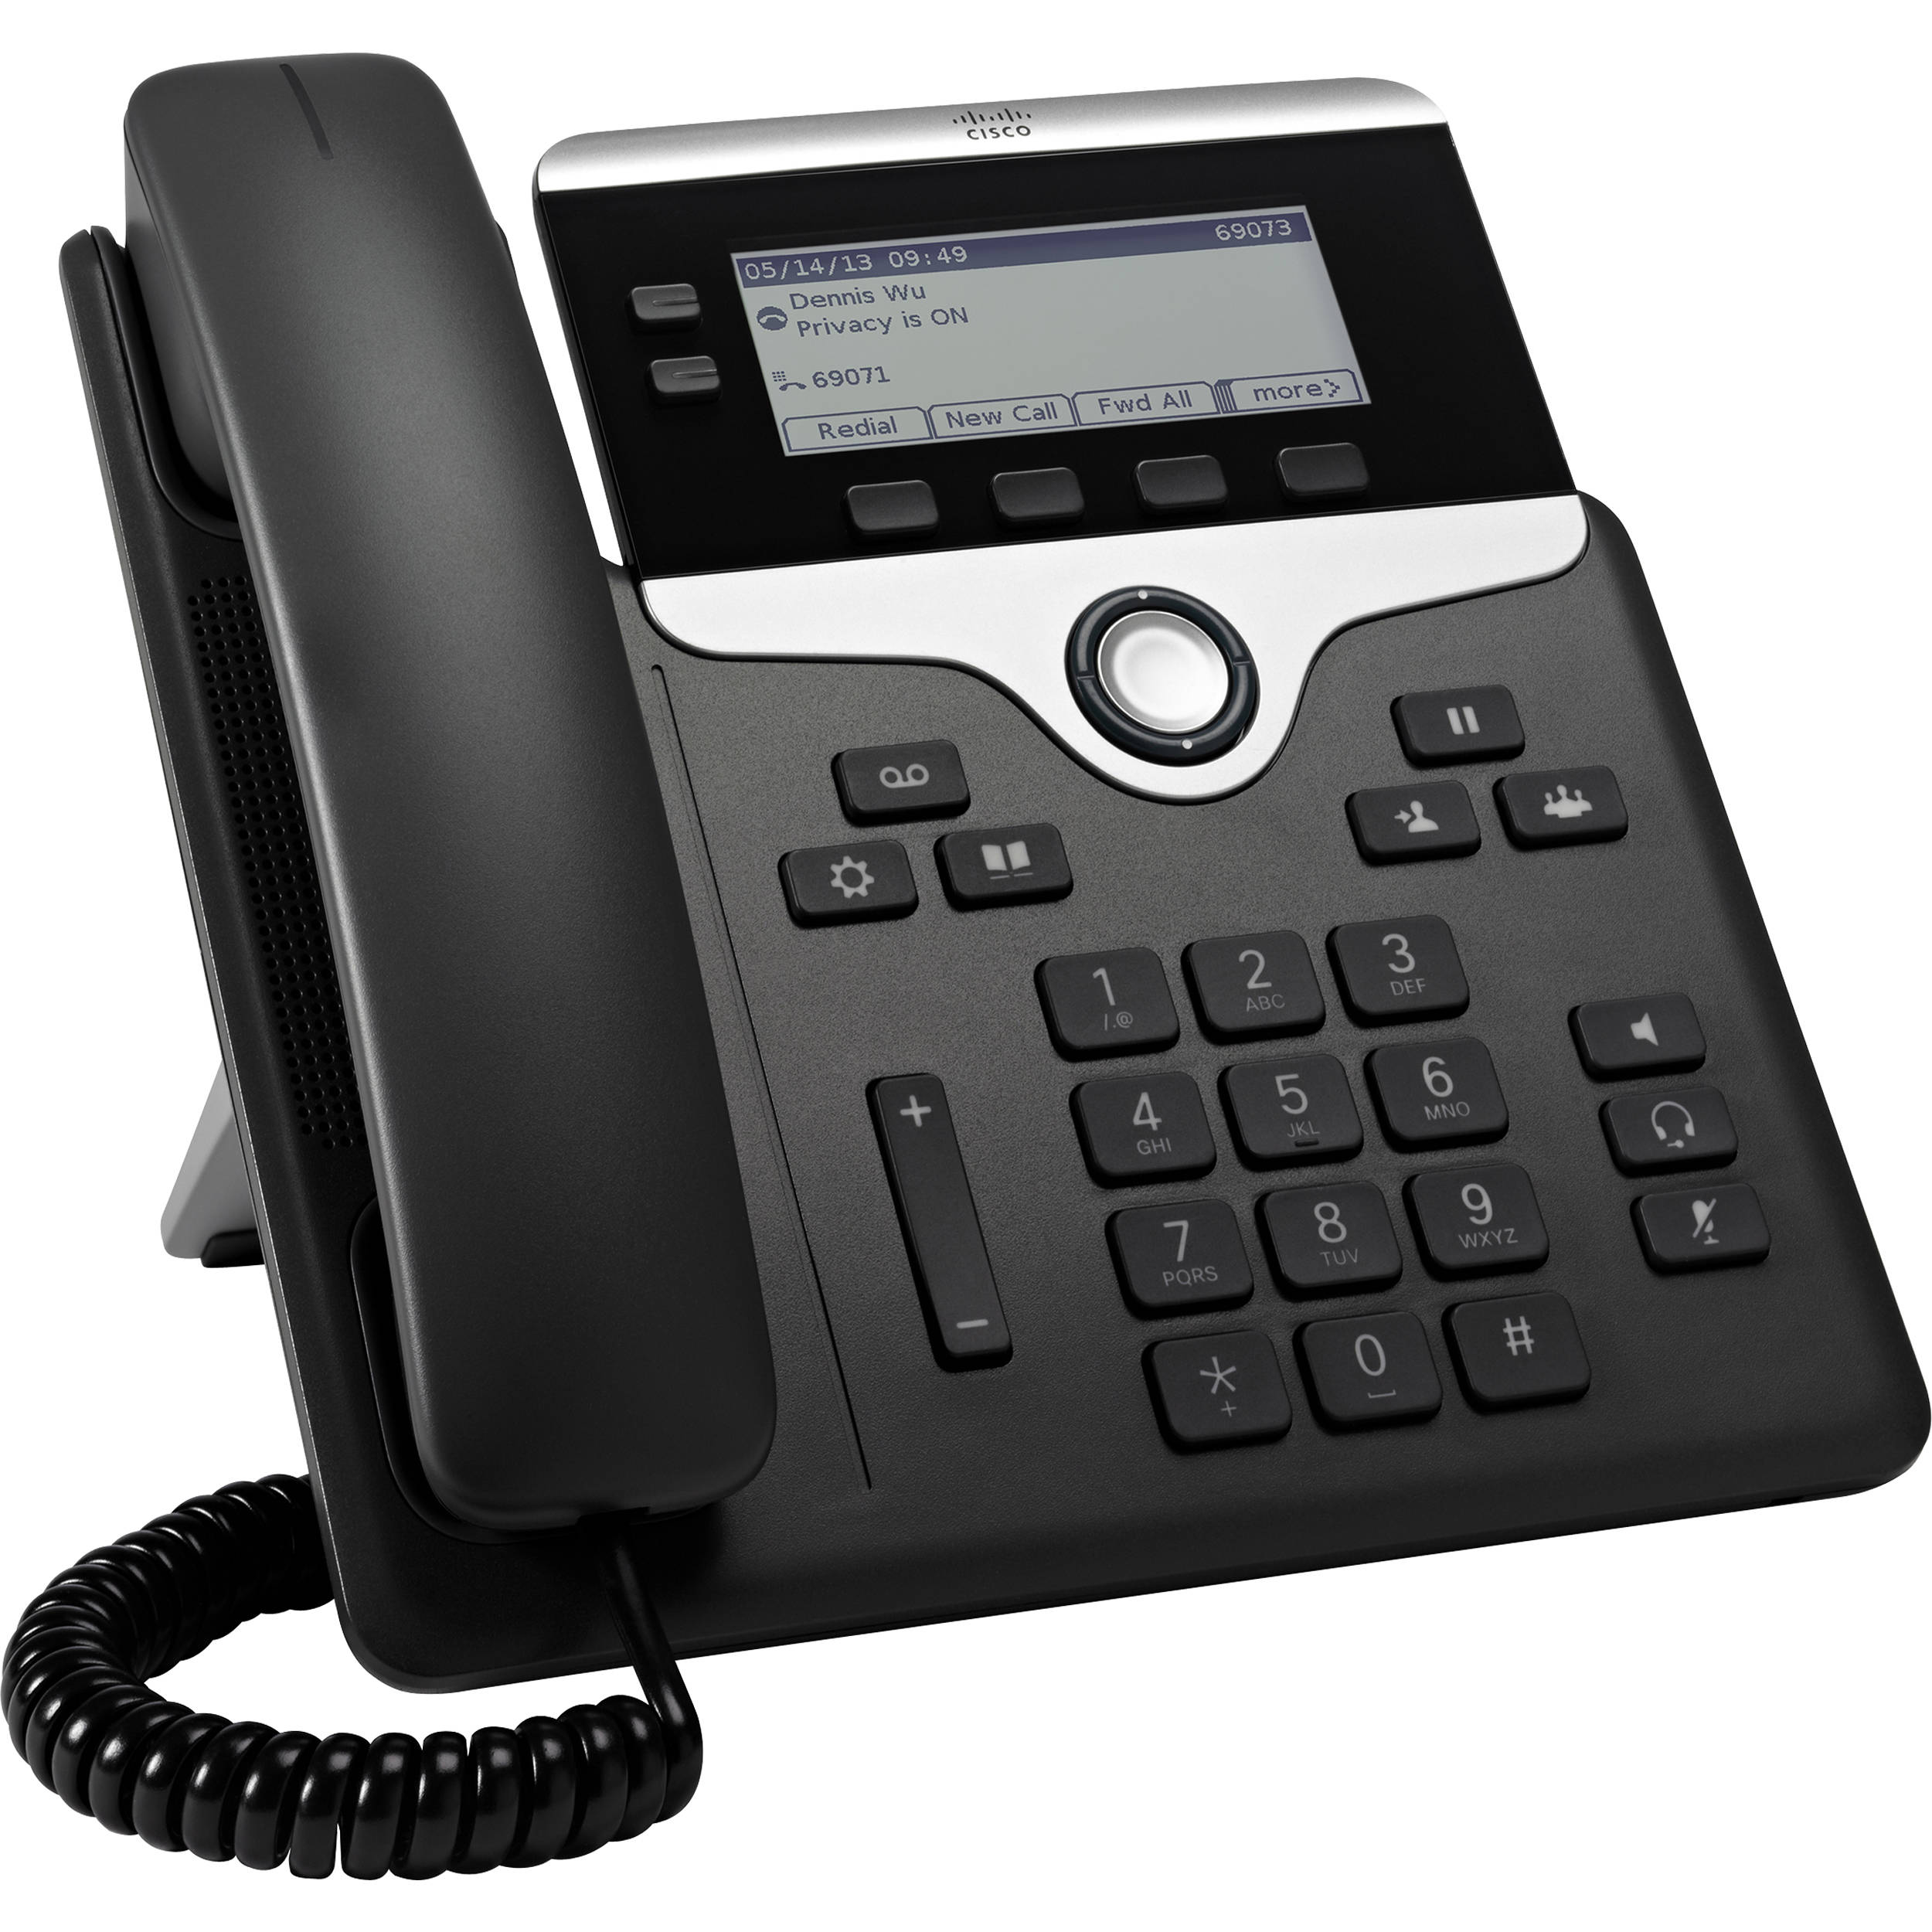 Cisco 7821 IP Phone Refurbished